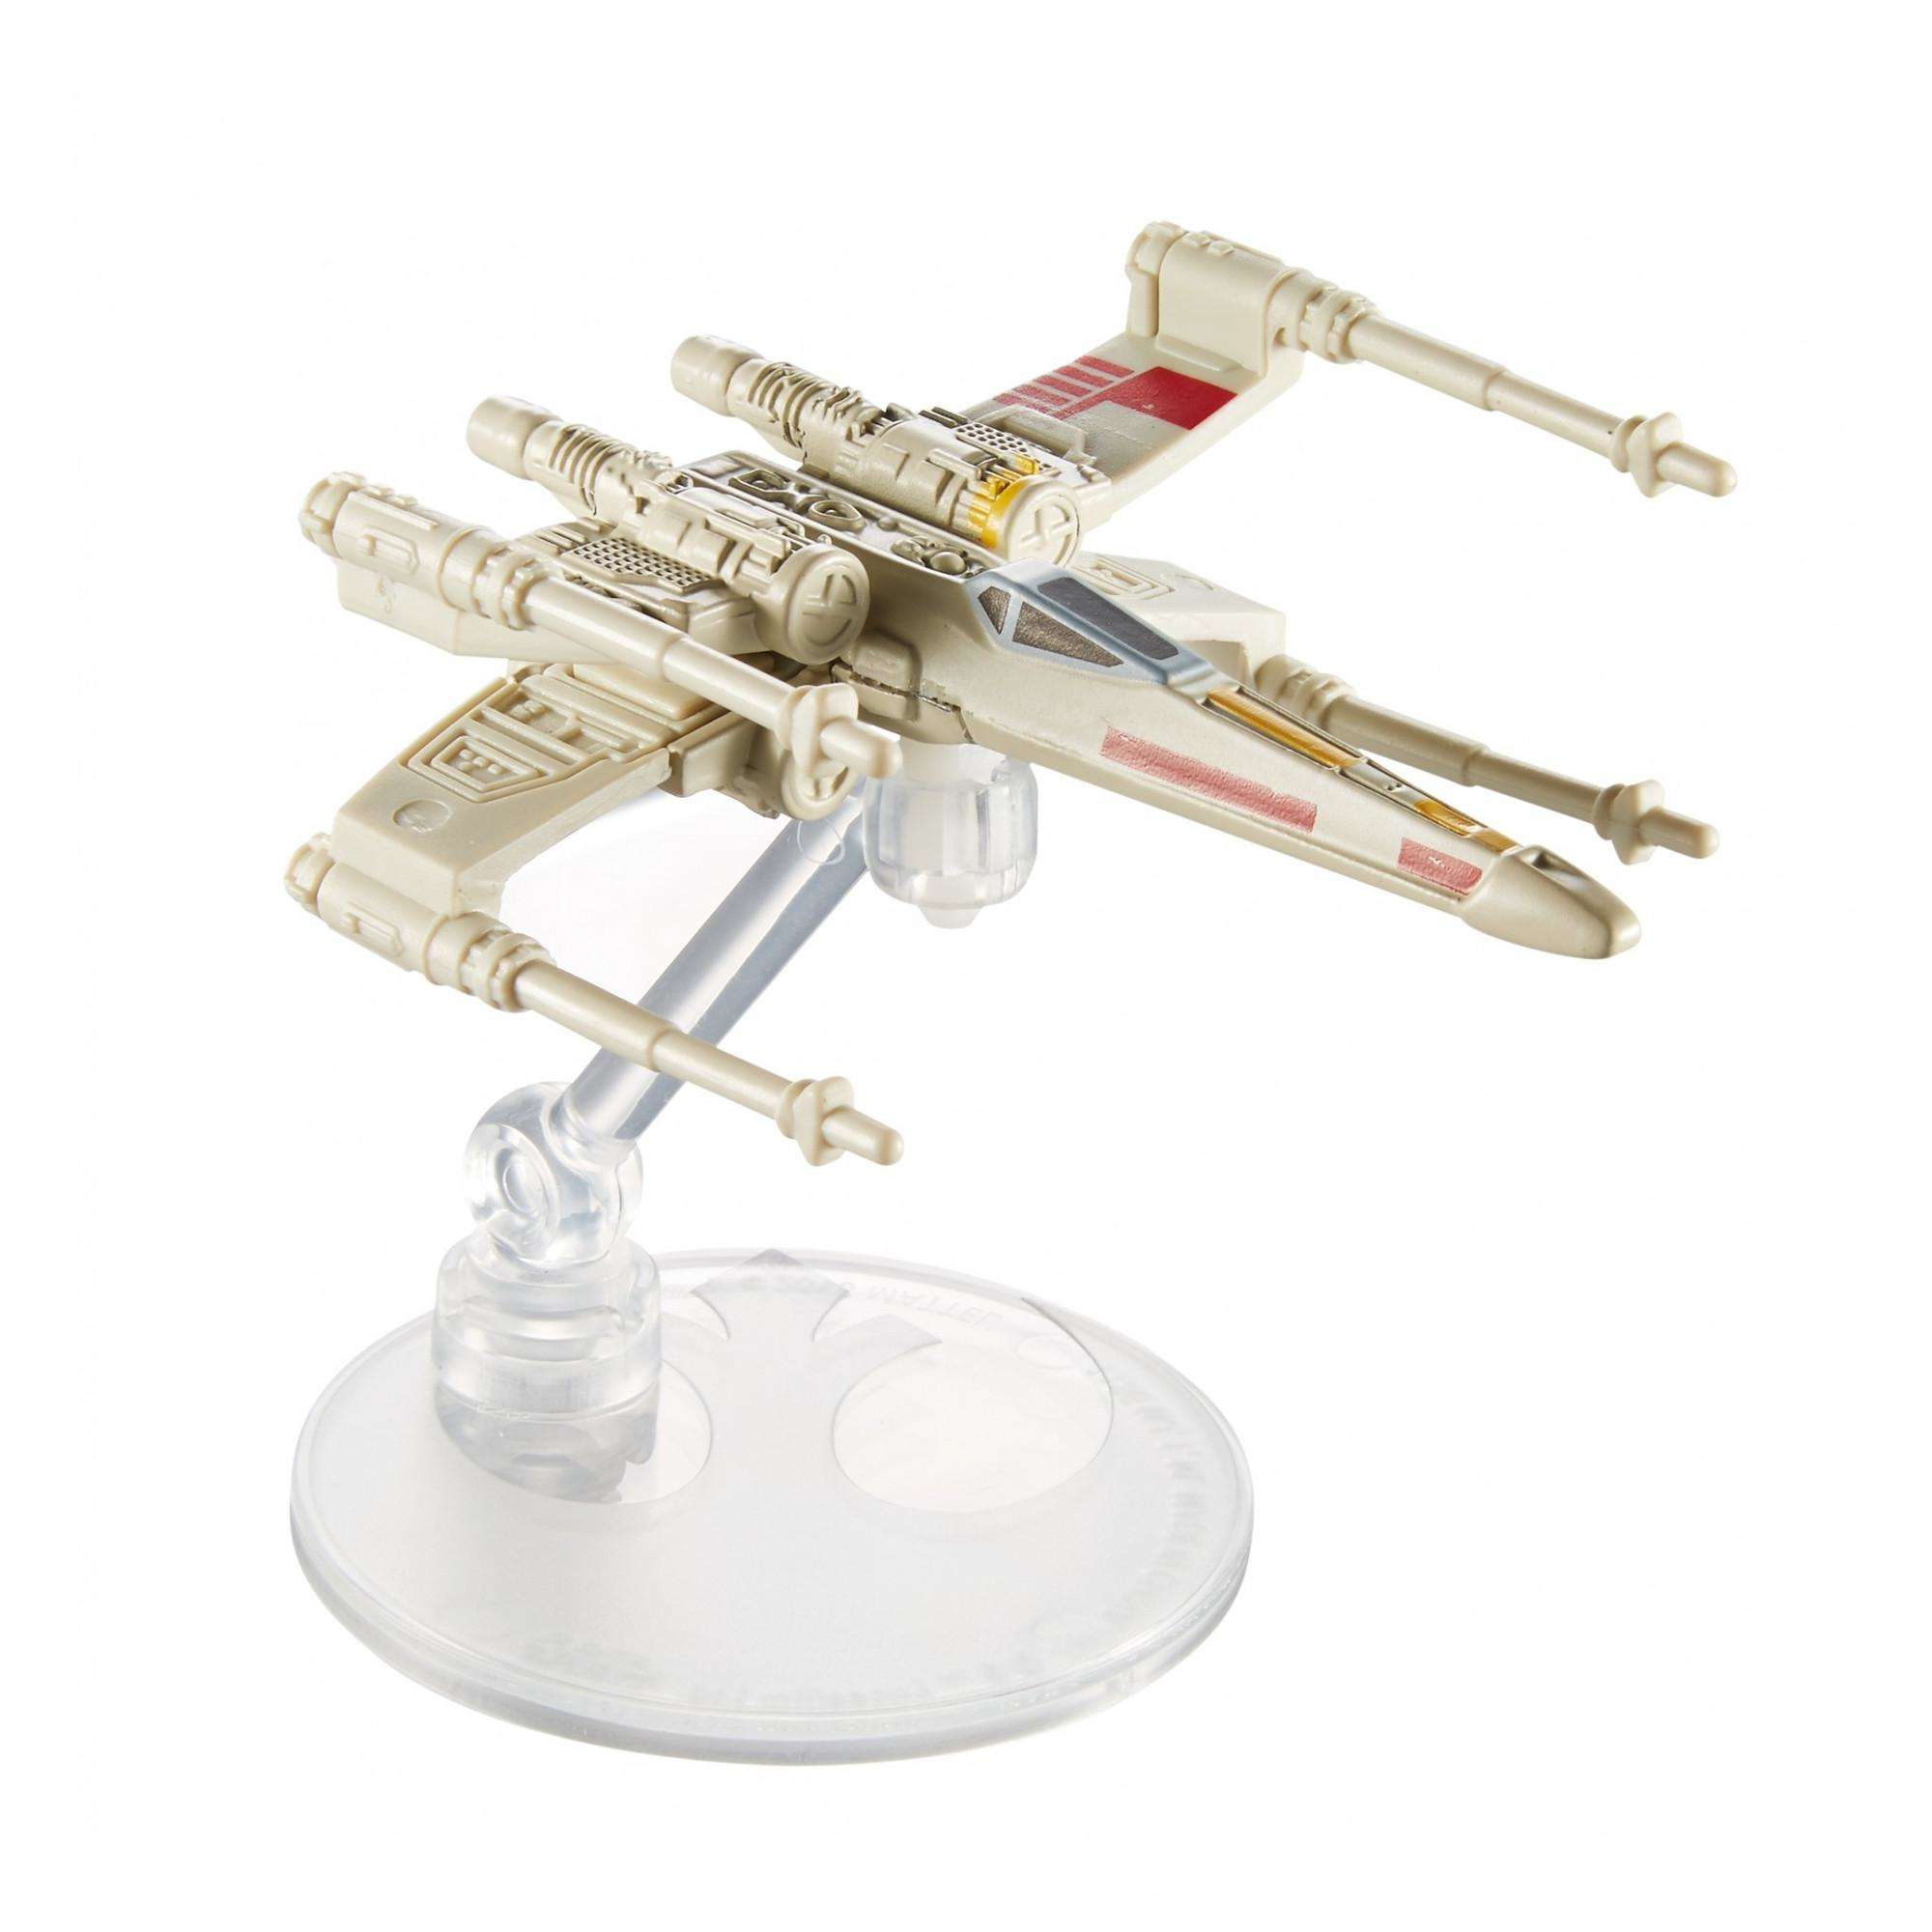 Hot Wheels Star Wars Starships X-Wing Fighter Red Five Vehicle